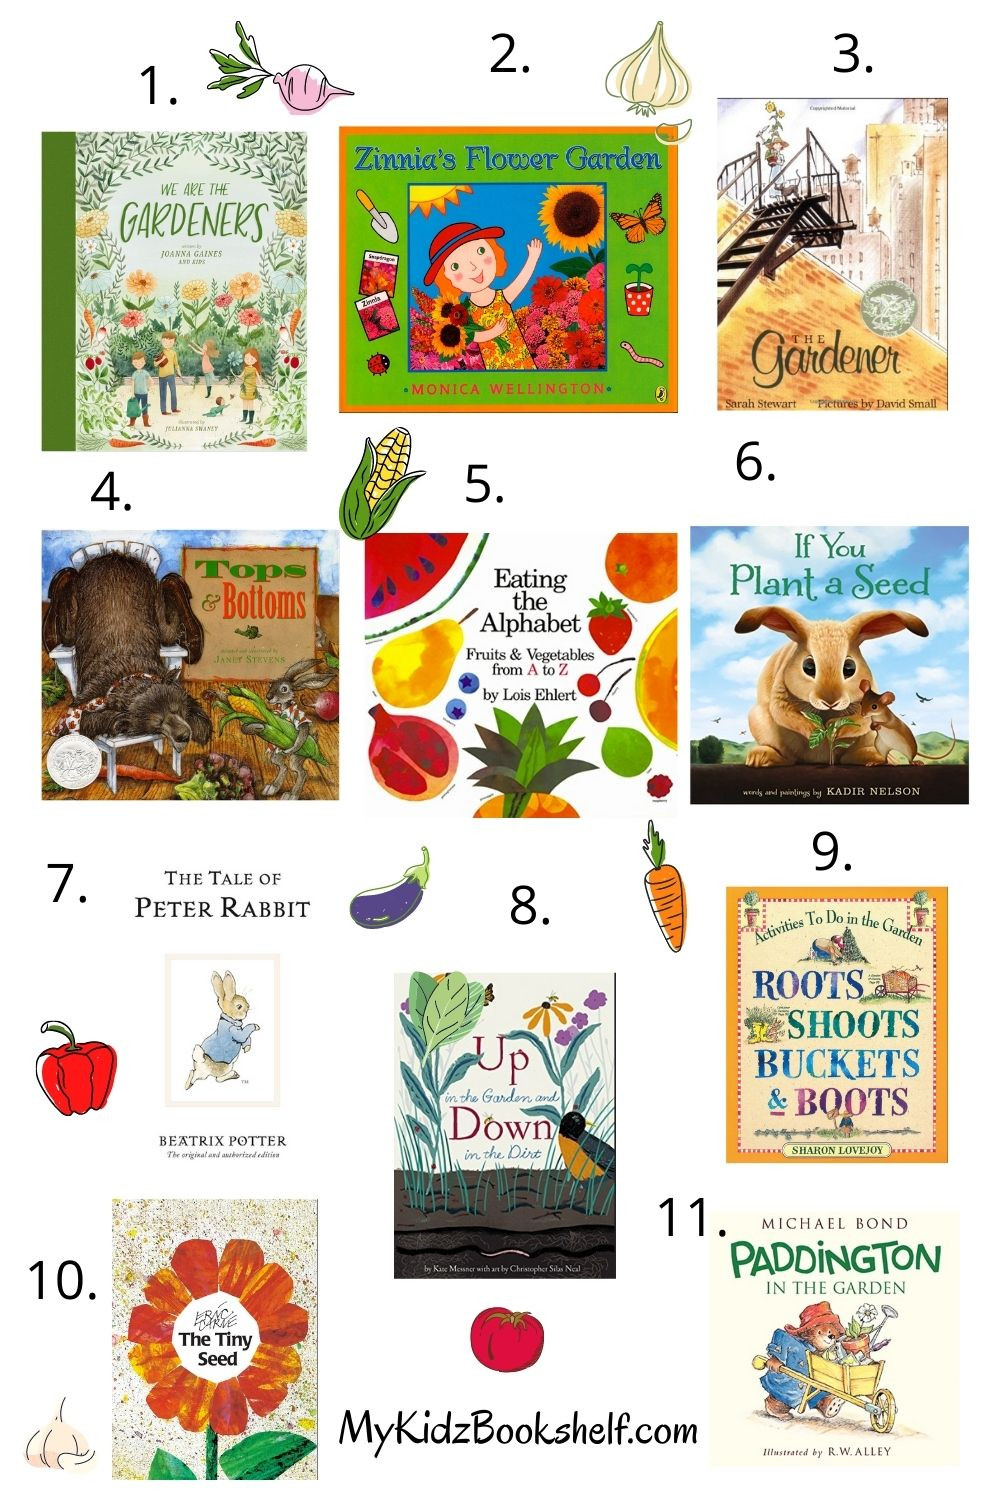 Various picture books featuring gardening by different authors Paddington, Joanna Gaines, Eric Carle, Beatrix Potter